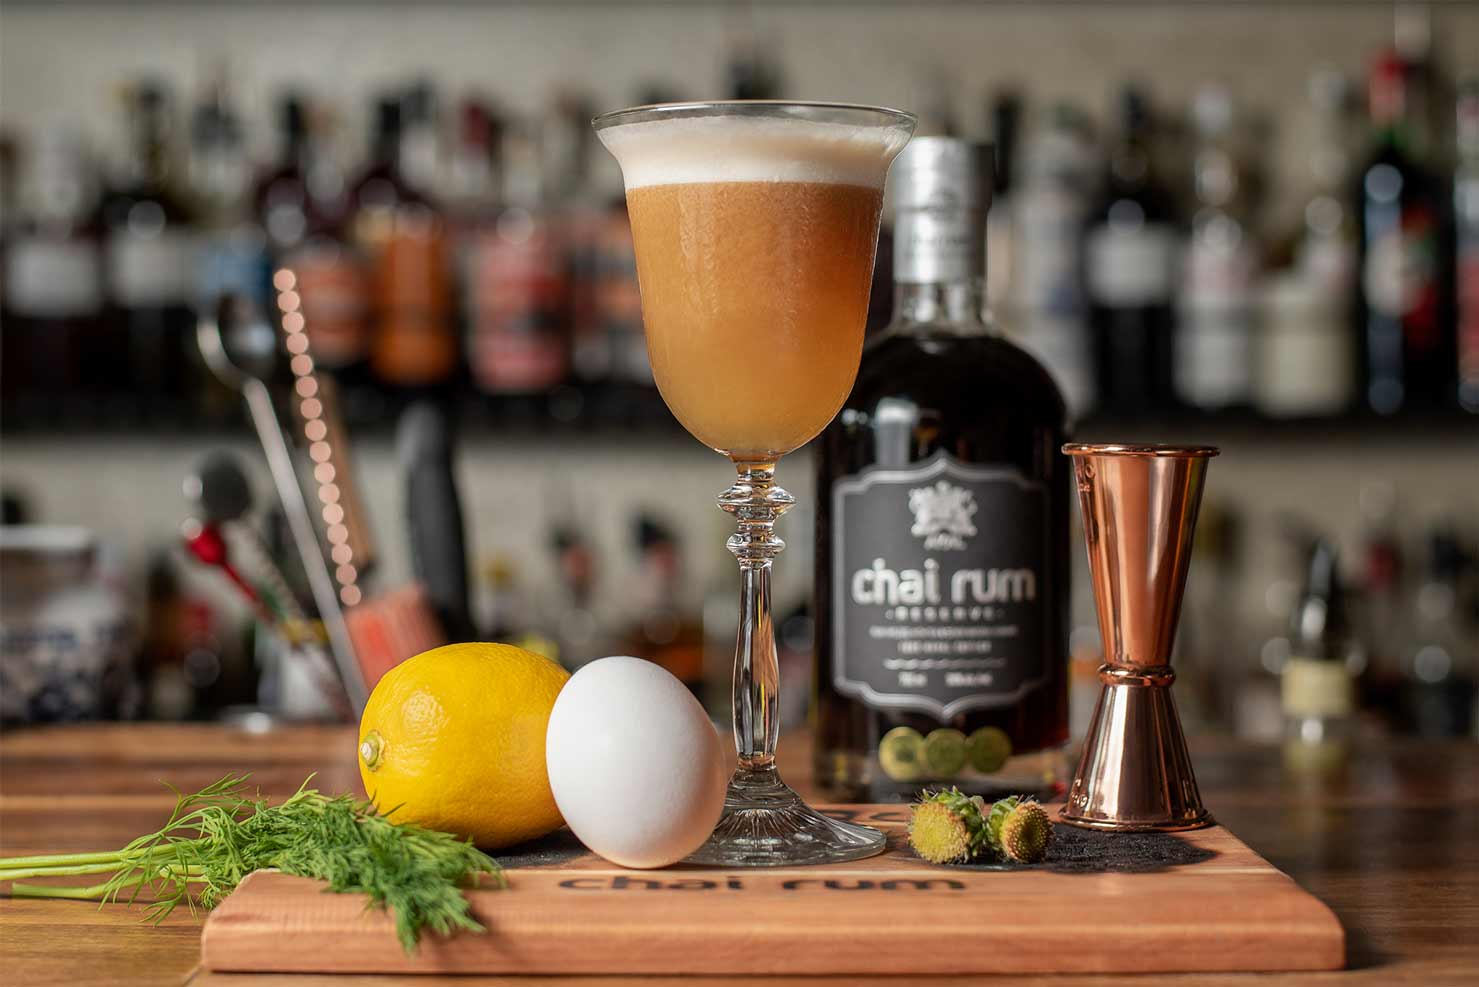 Chai Rum cocktail